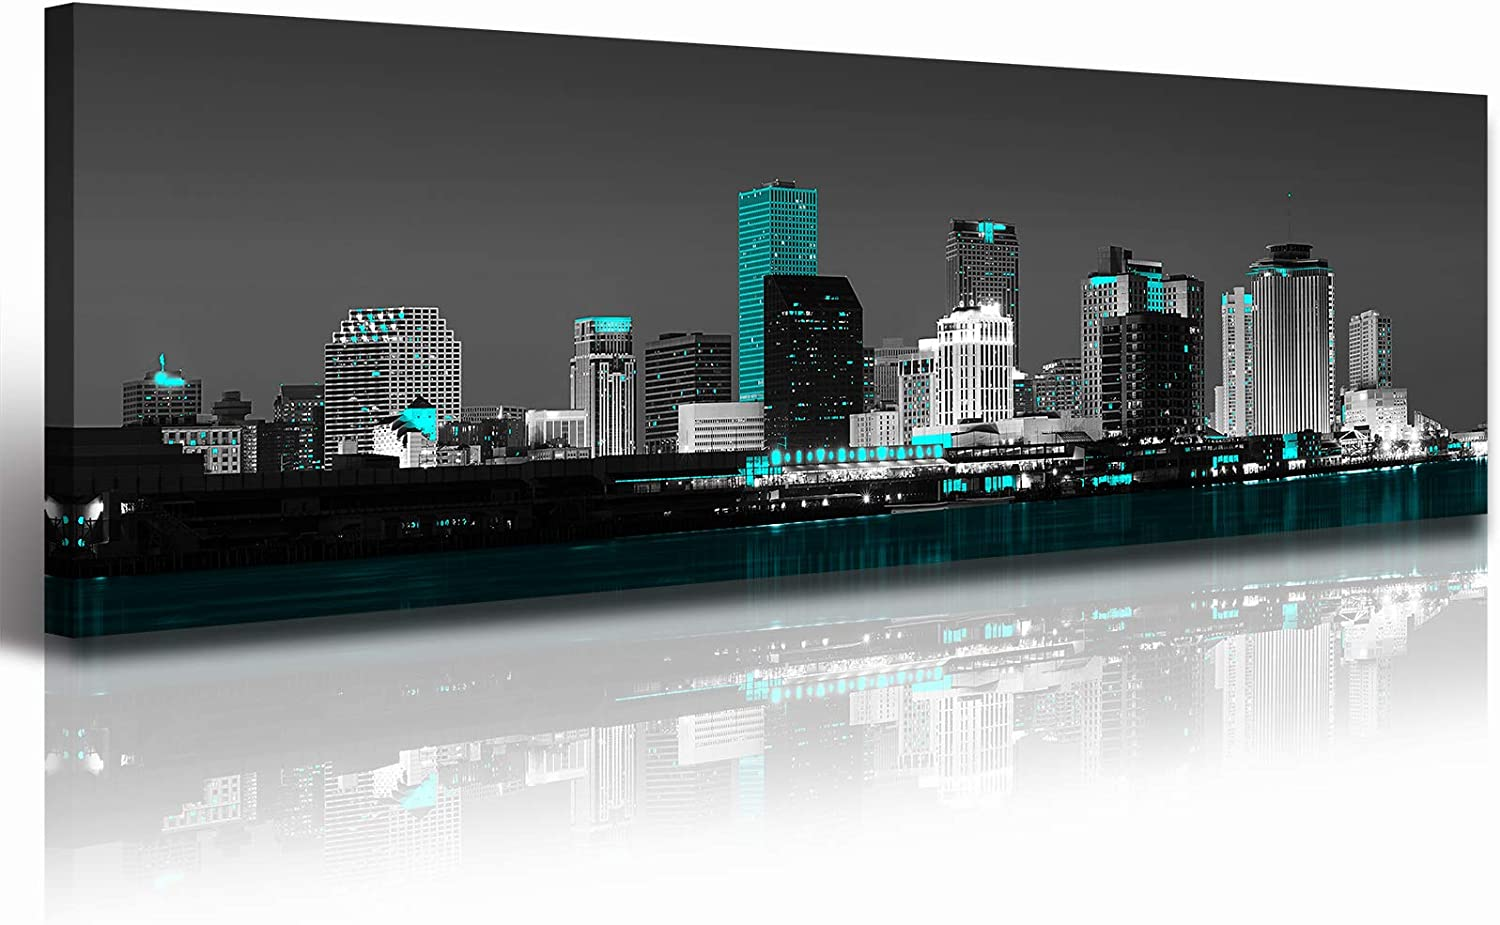 """New Orlean Canvas Wall Art Aqua Green Teal Panorama Cityscape Pictures For Living Room Decor Black and White Skyline City Artwork Painting Contemporary Office Decorations 14""""X48"""" StretchedandFramedReadytoHang"""